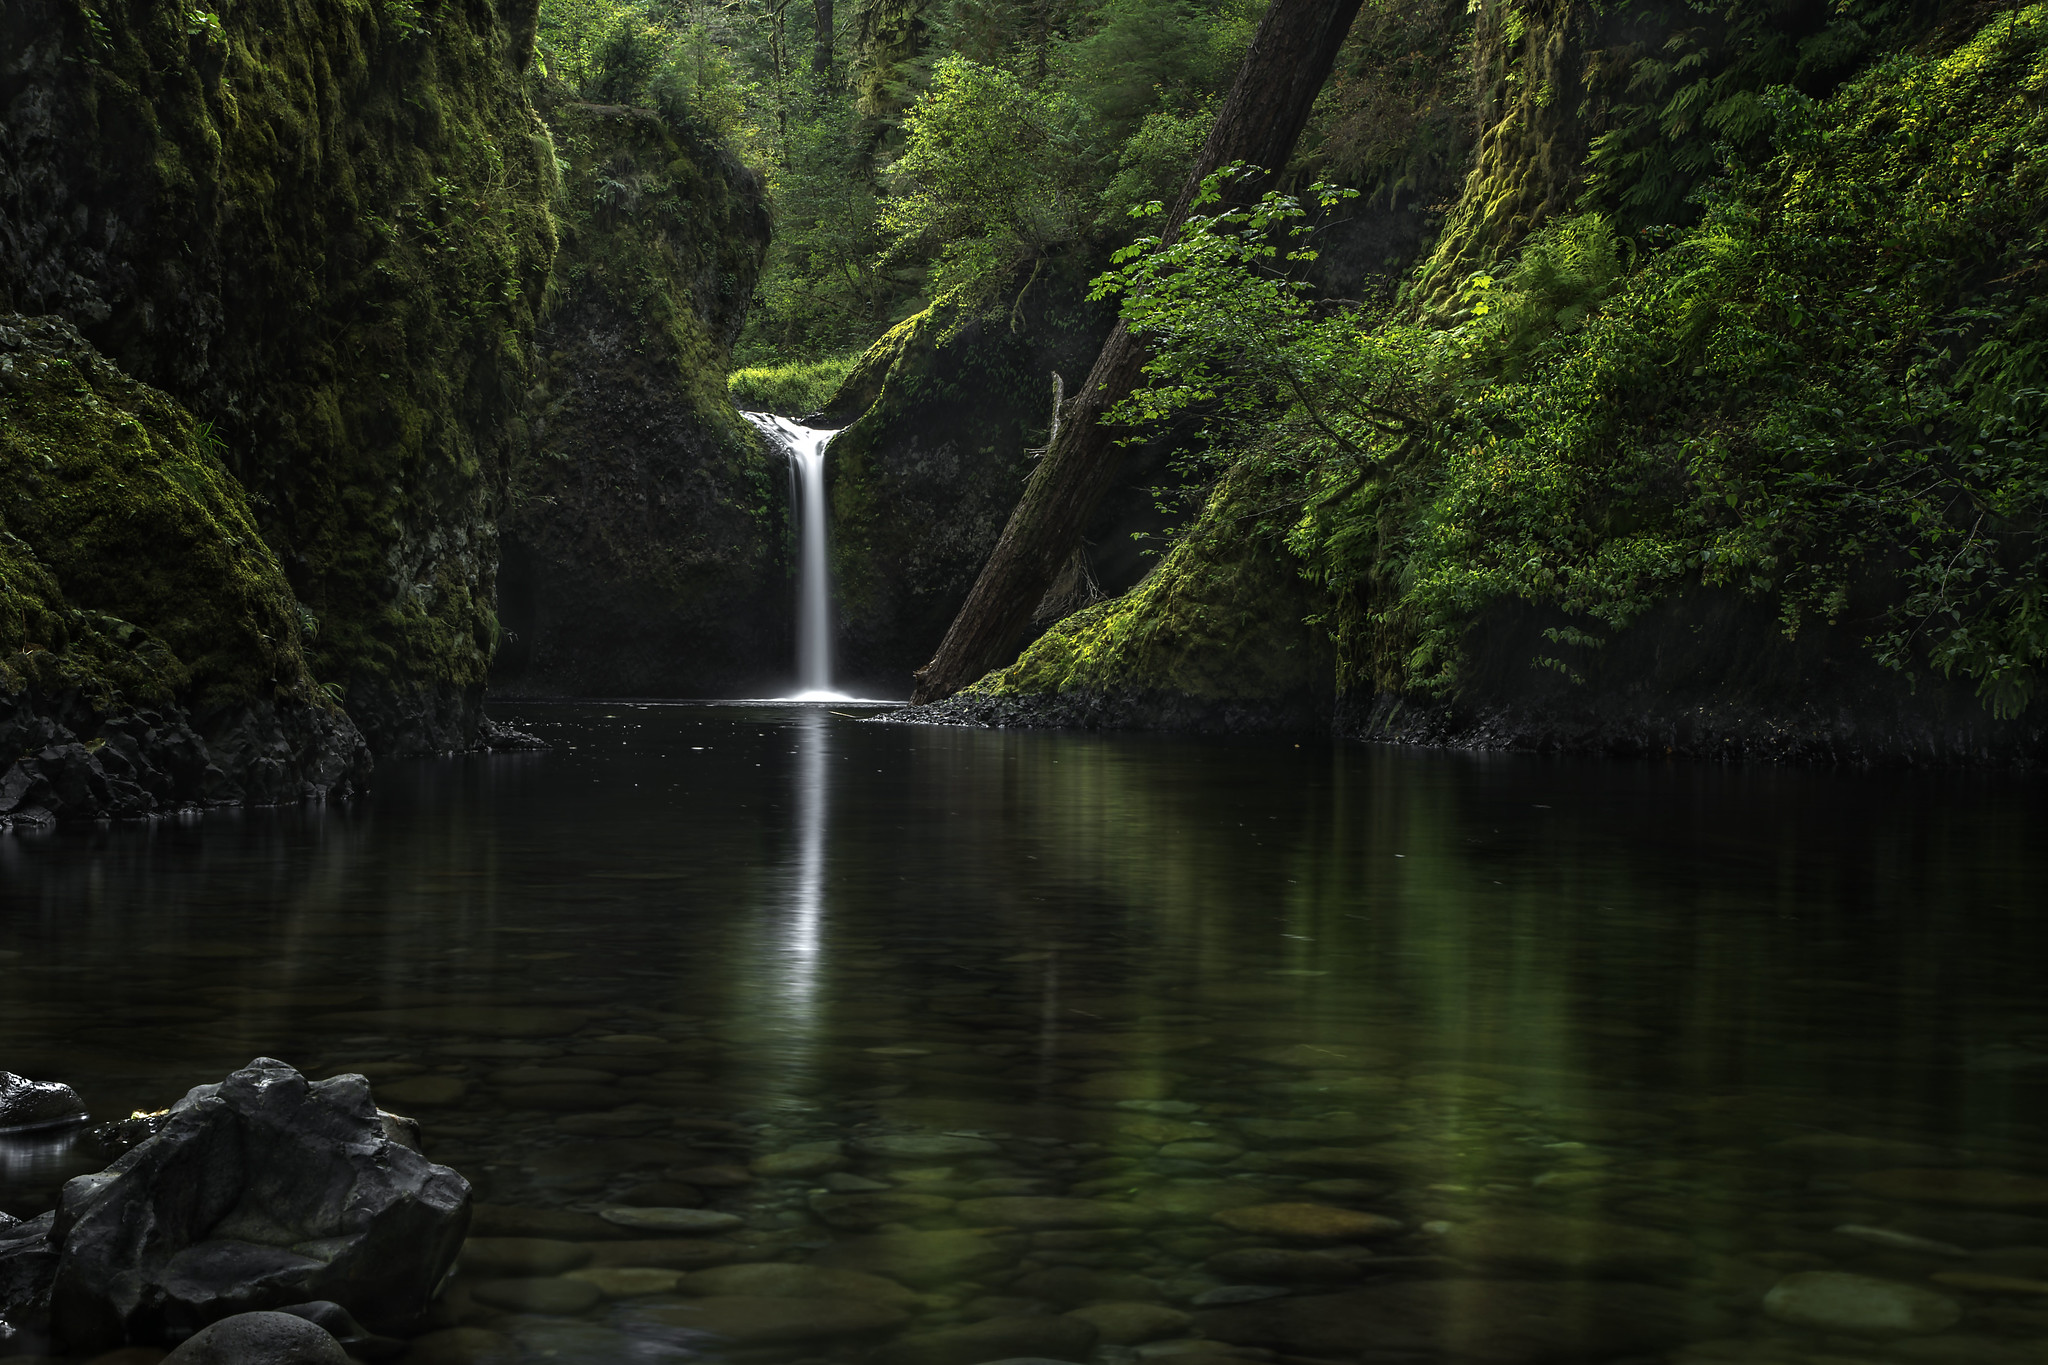 Punch Bowl Falls, Oregon [2048×1365] Photographed by Stokes RX